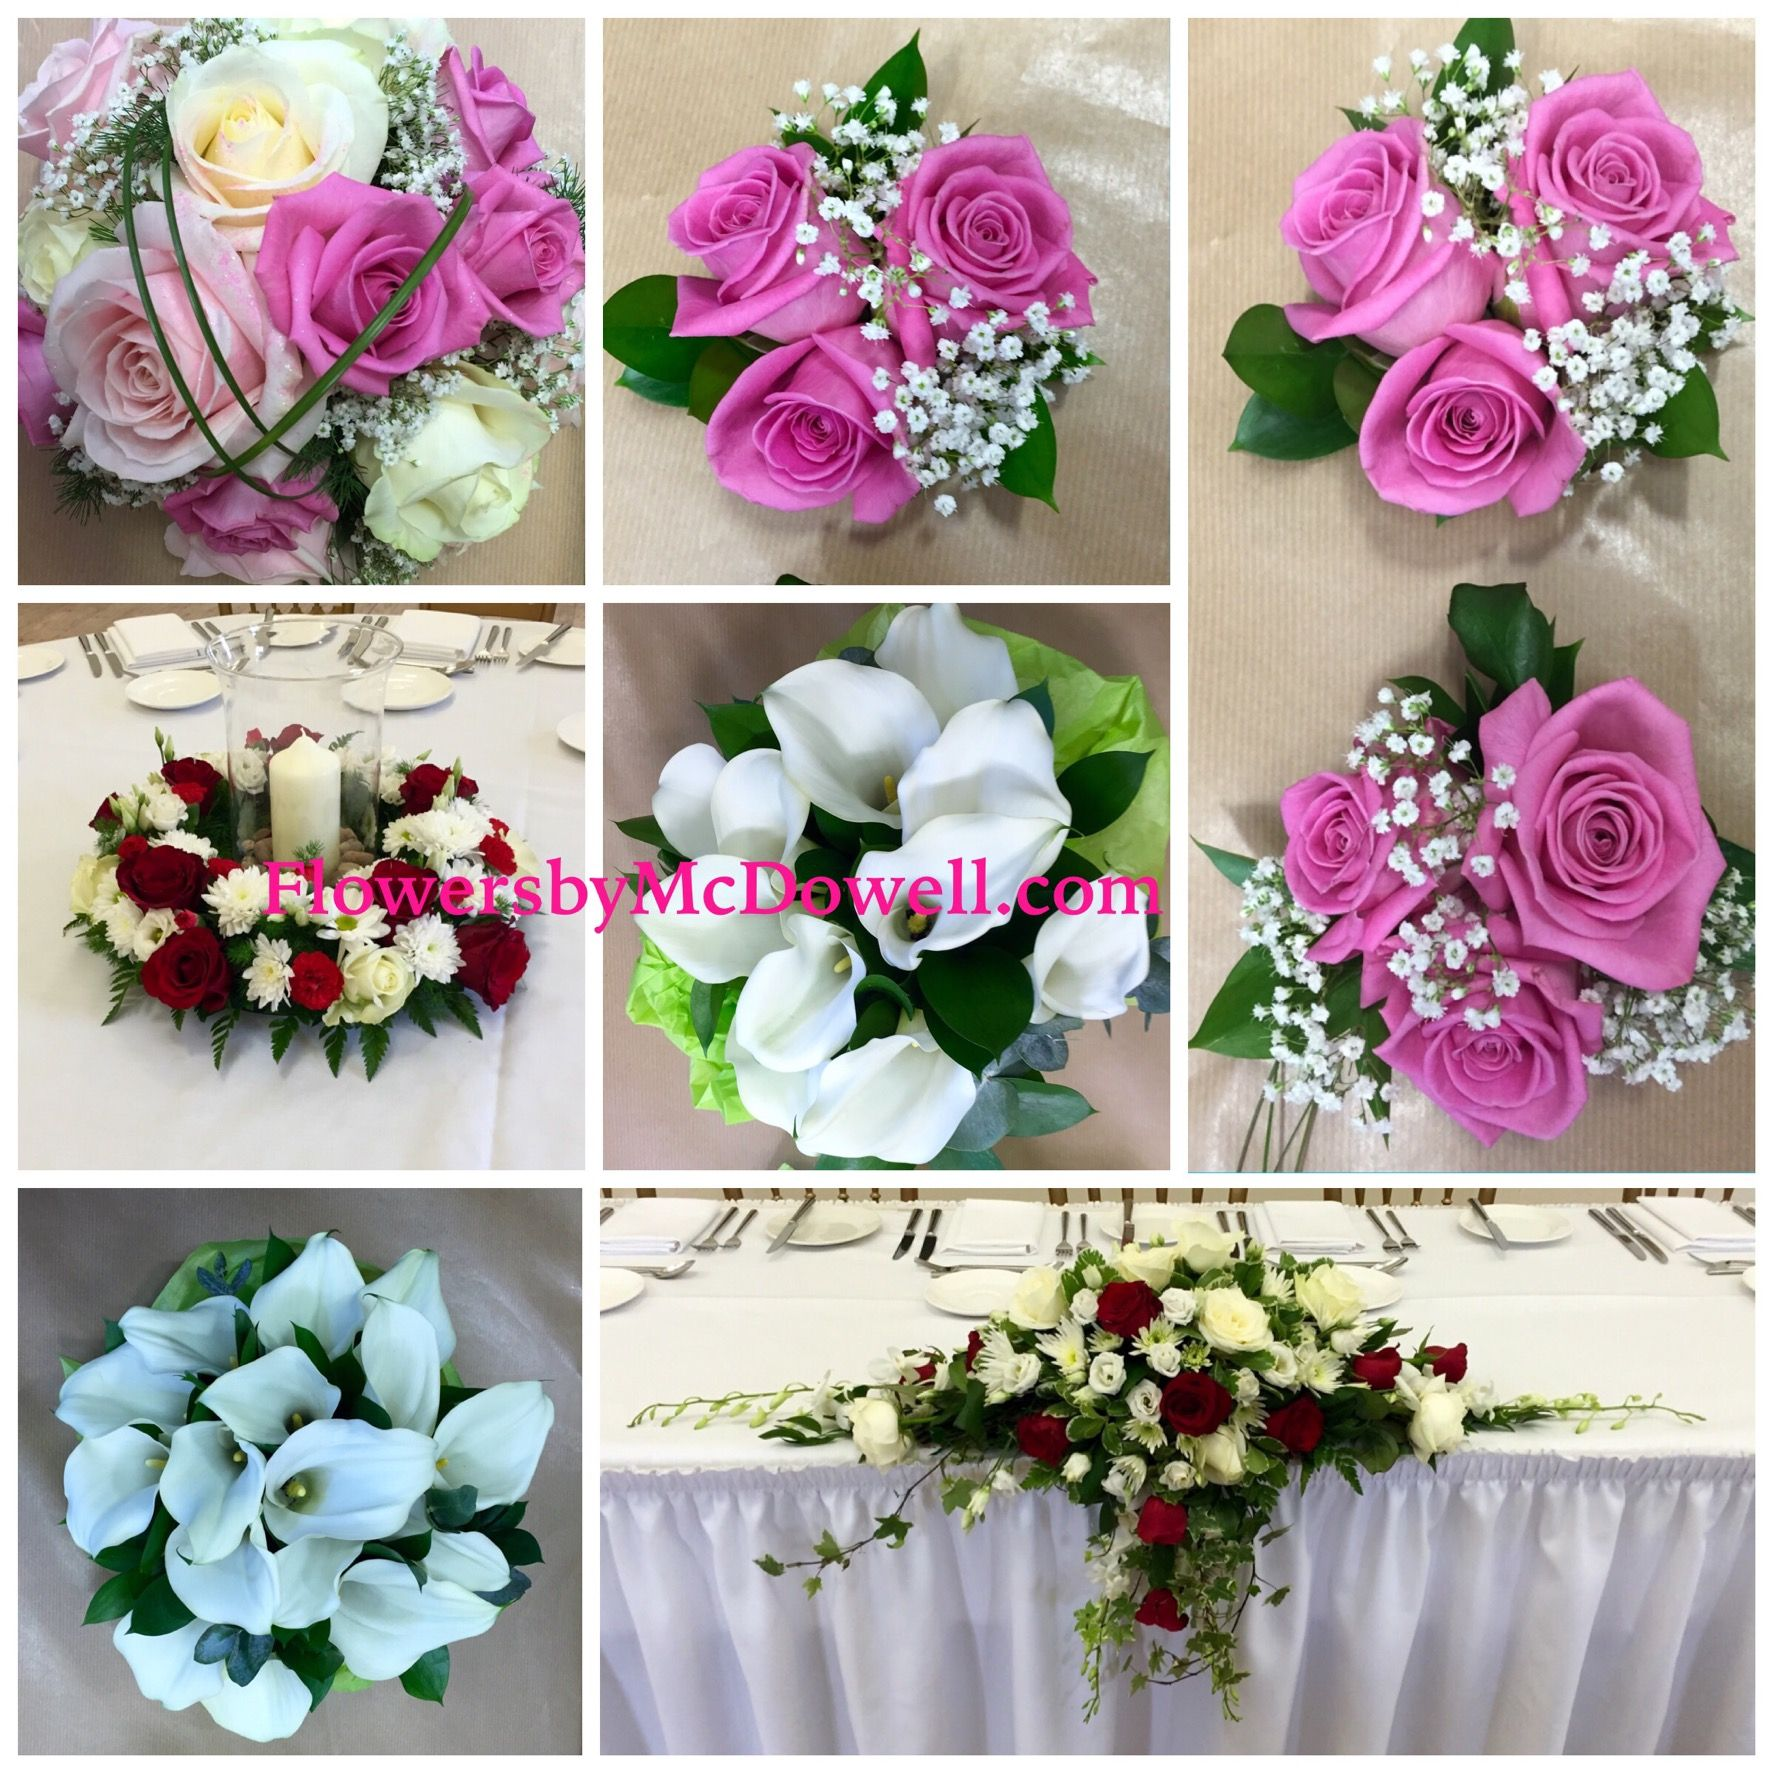 Brides pink Aqua roses, Ivory Avalanche roses, sweet Avalanche roses and steel grass. Flower girls Aqua roses and gyp hand tied